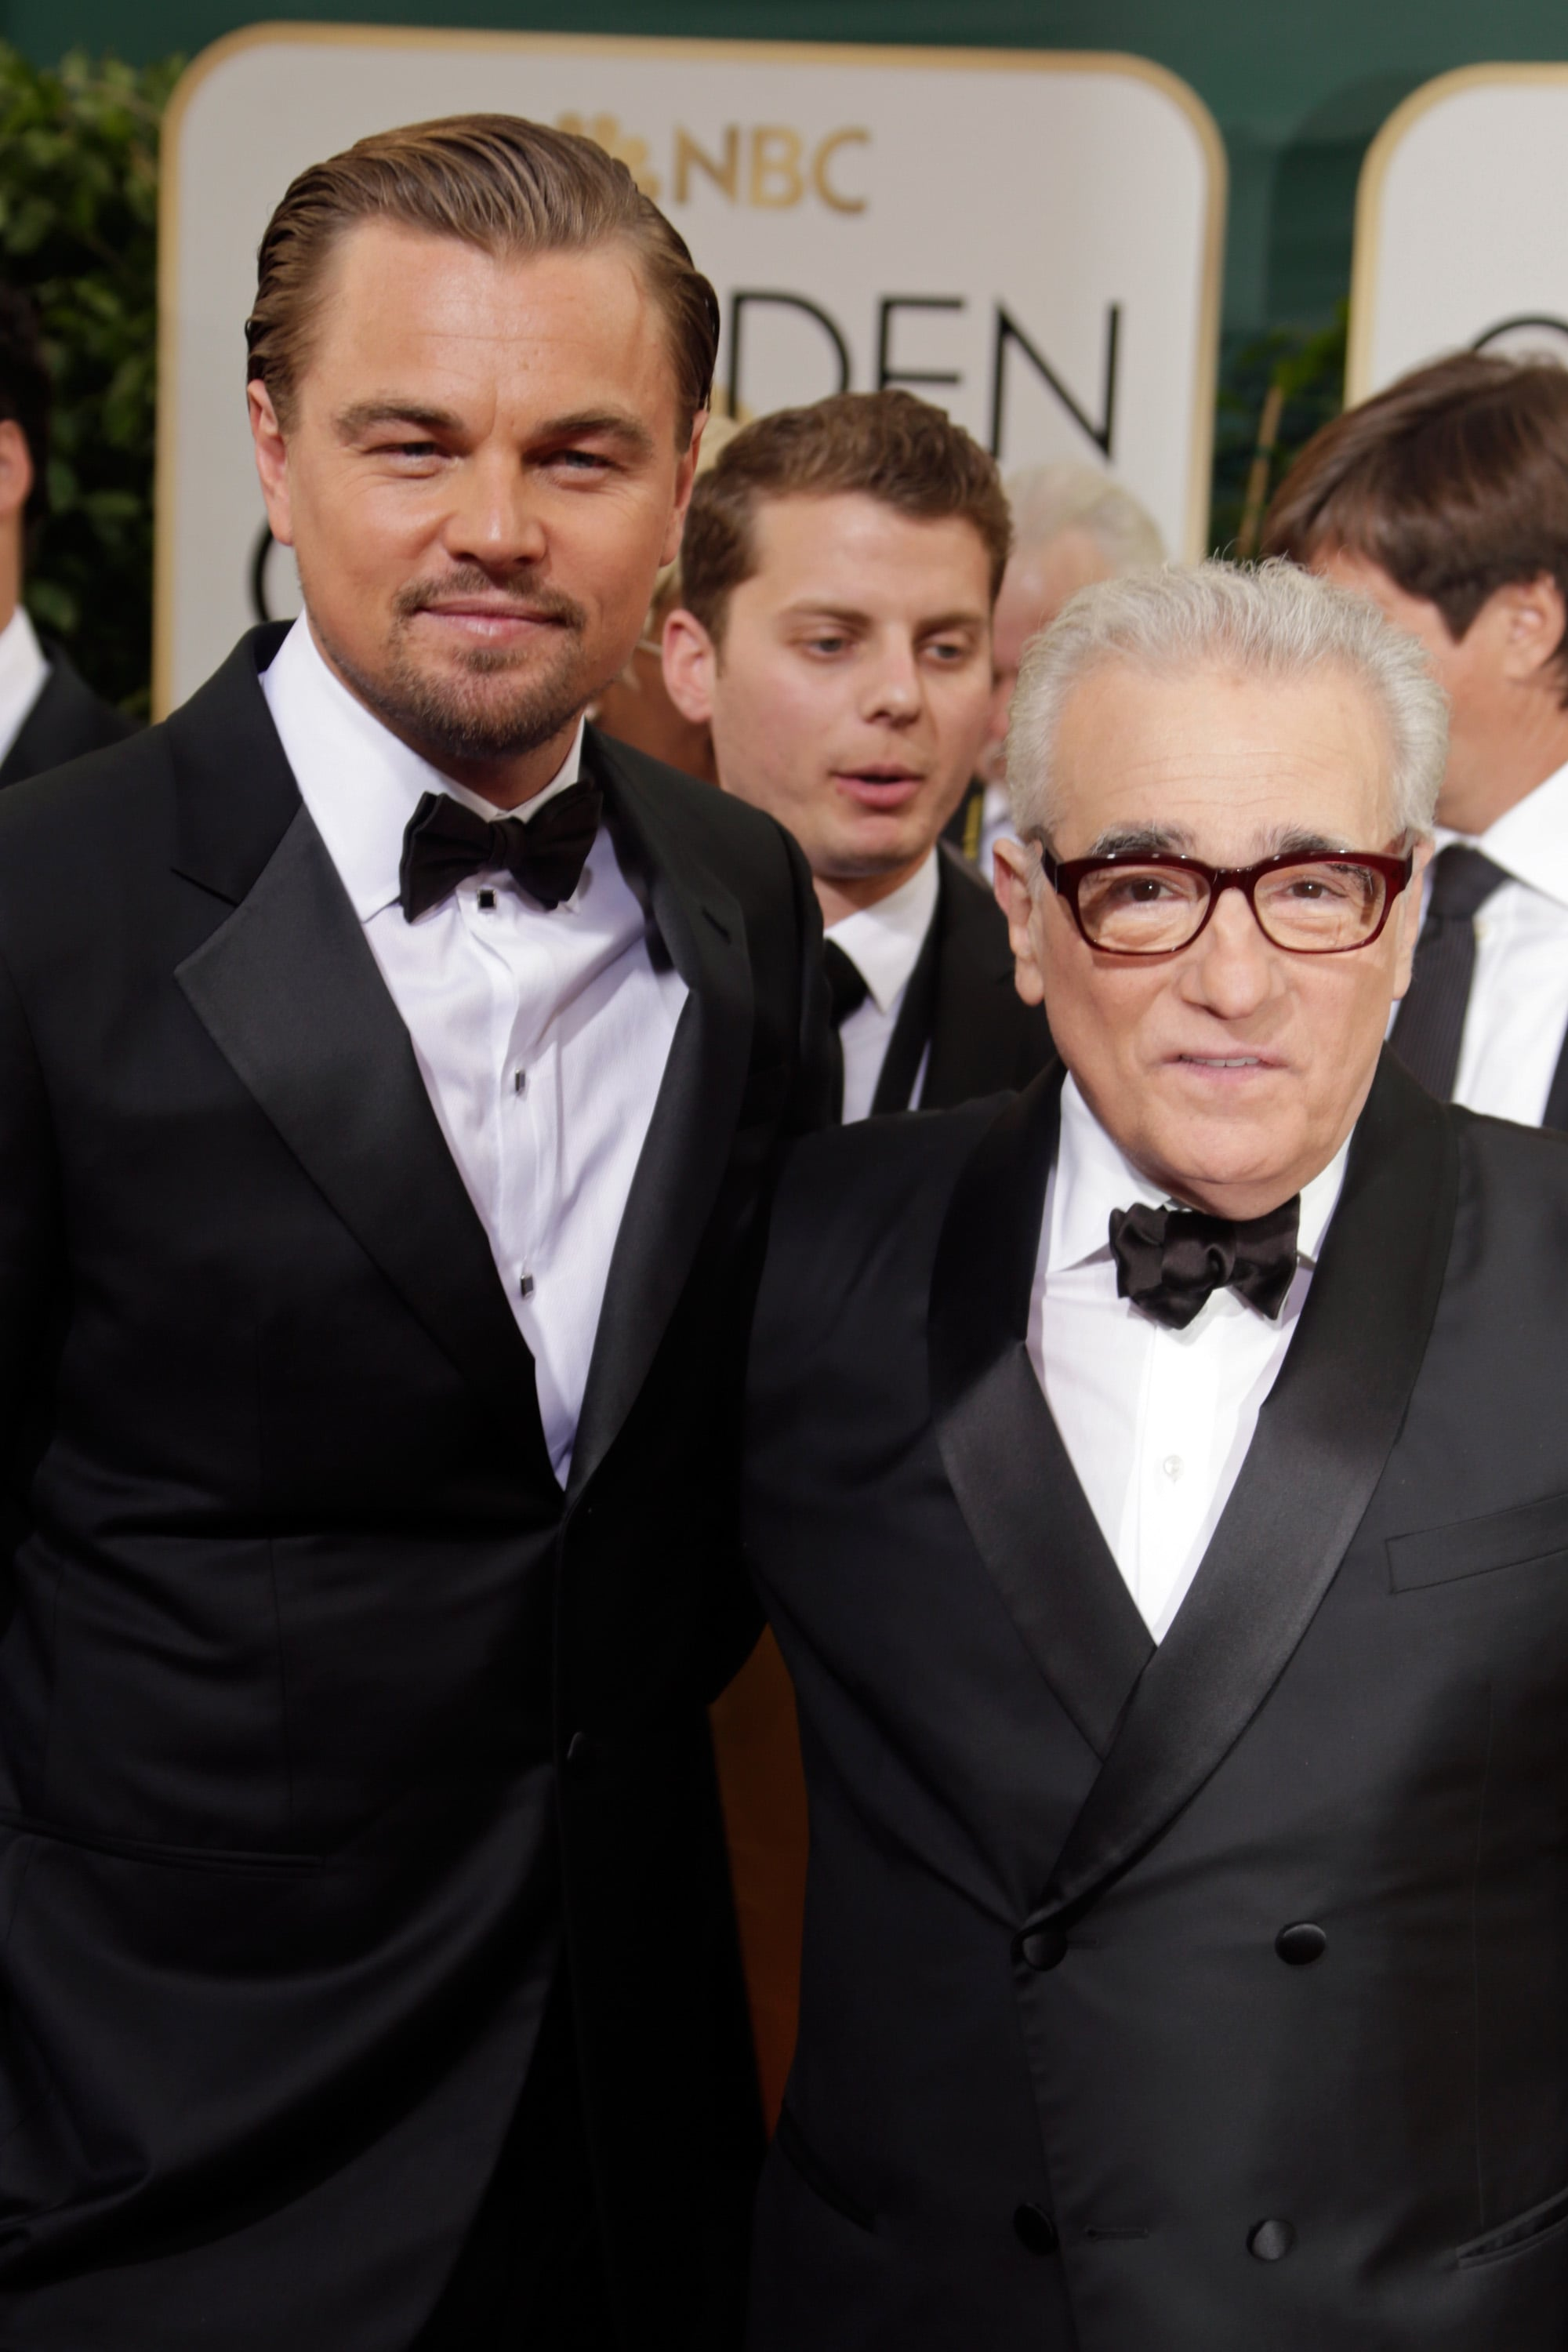 He hung out with director Martin Scorcese.